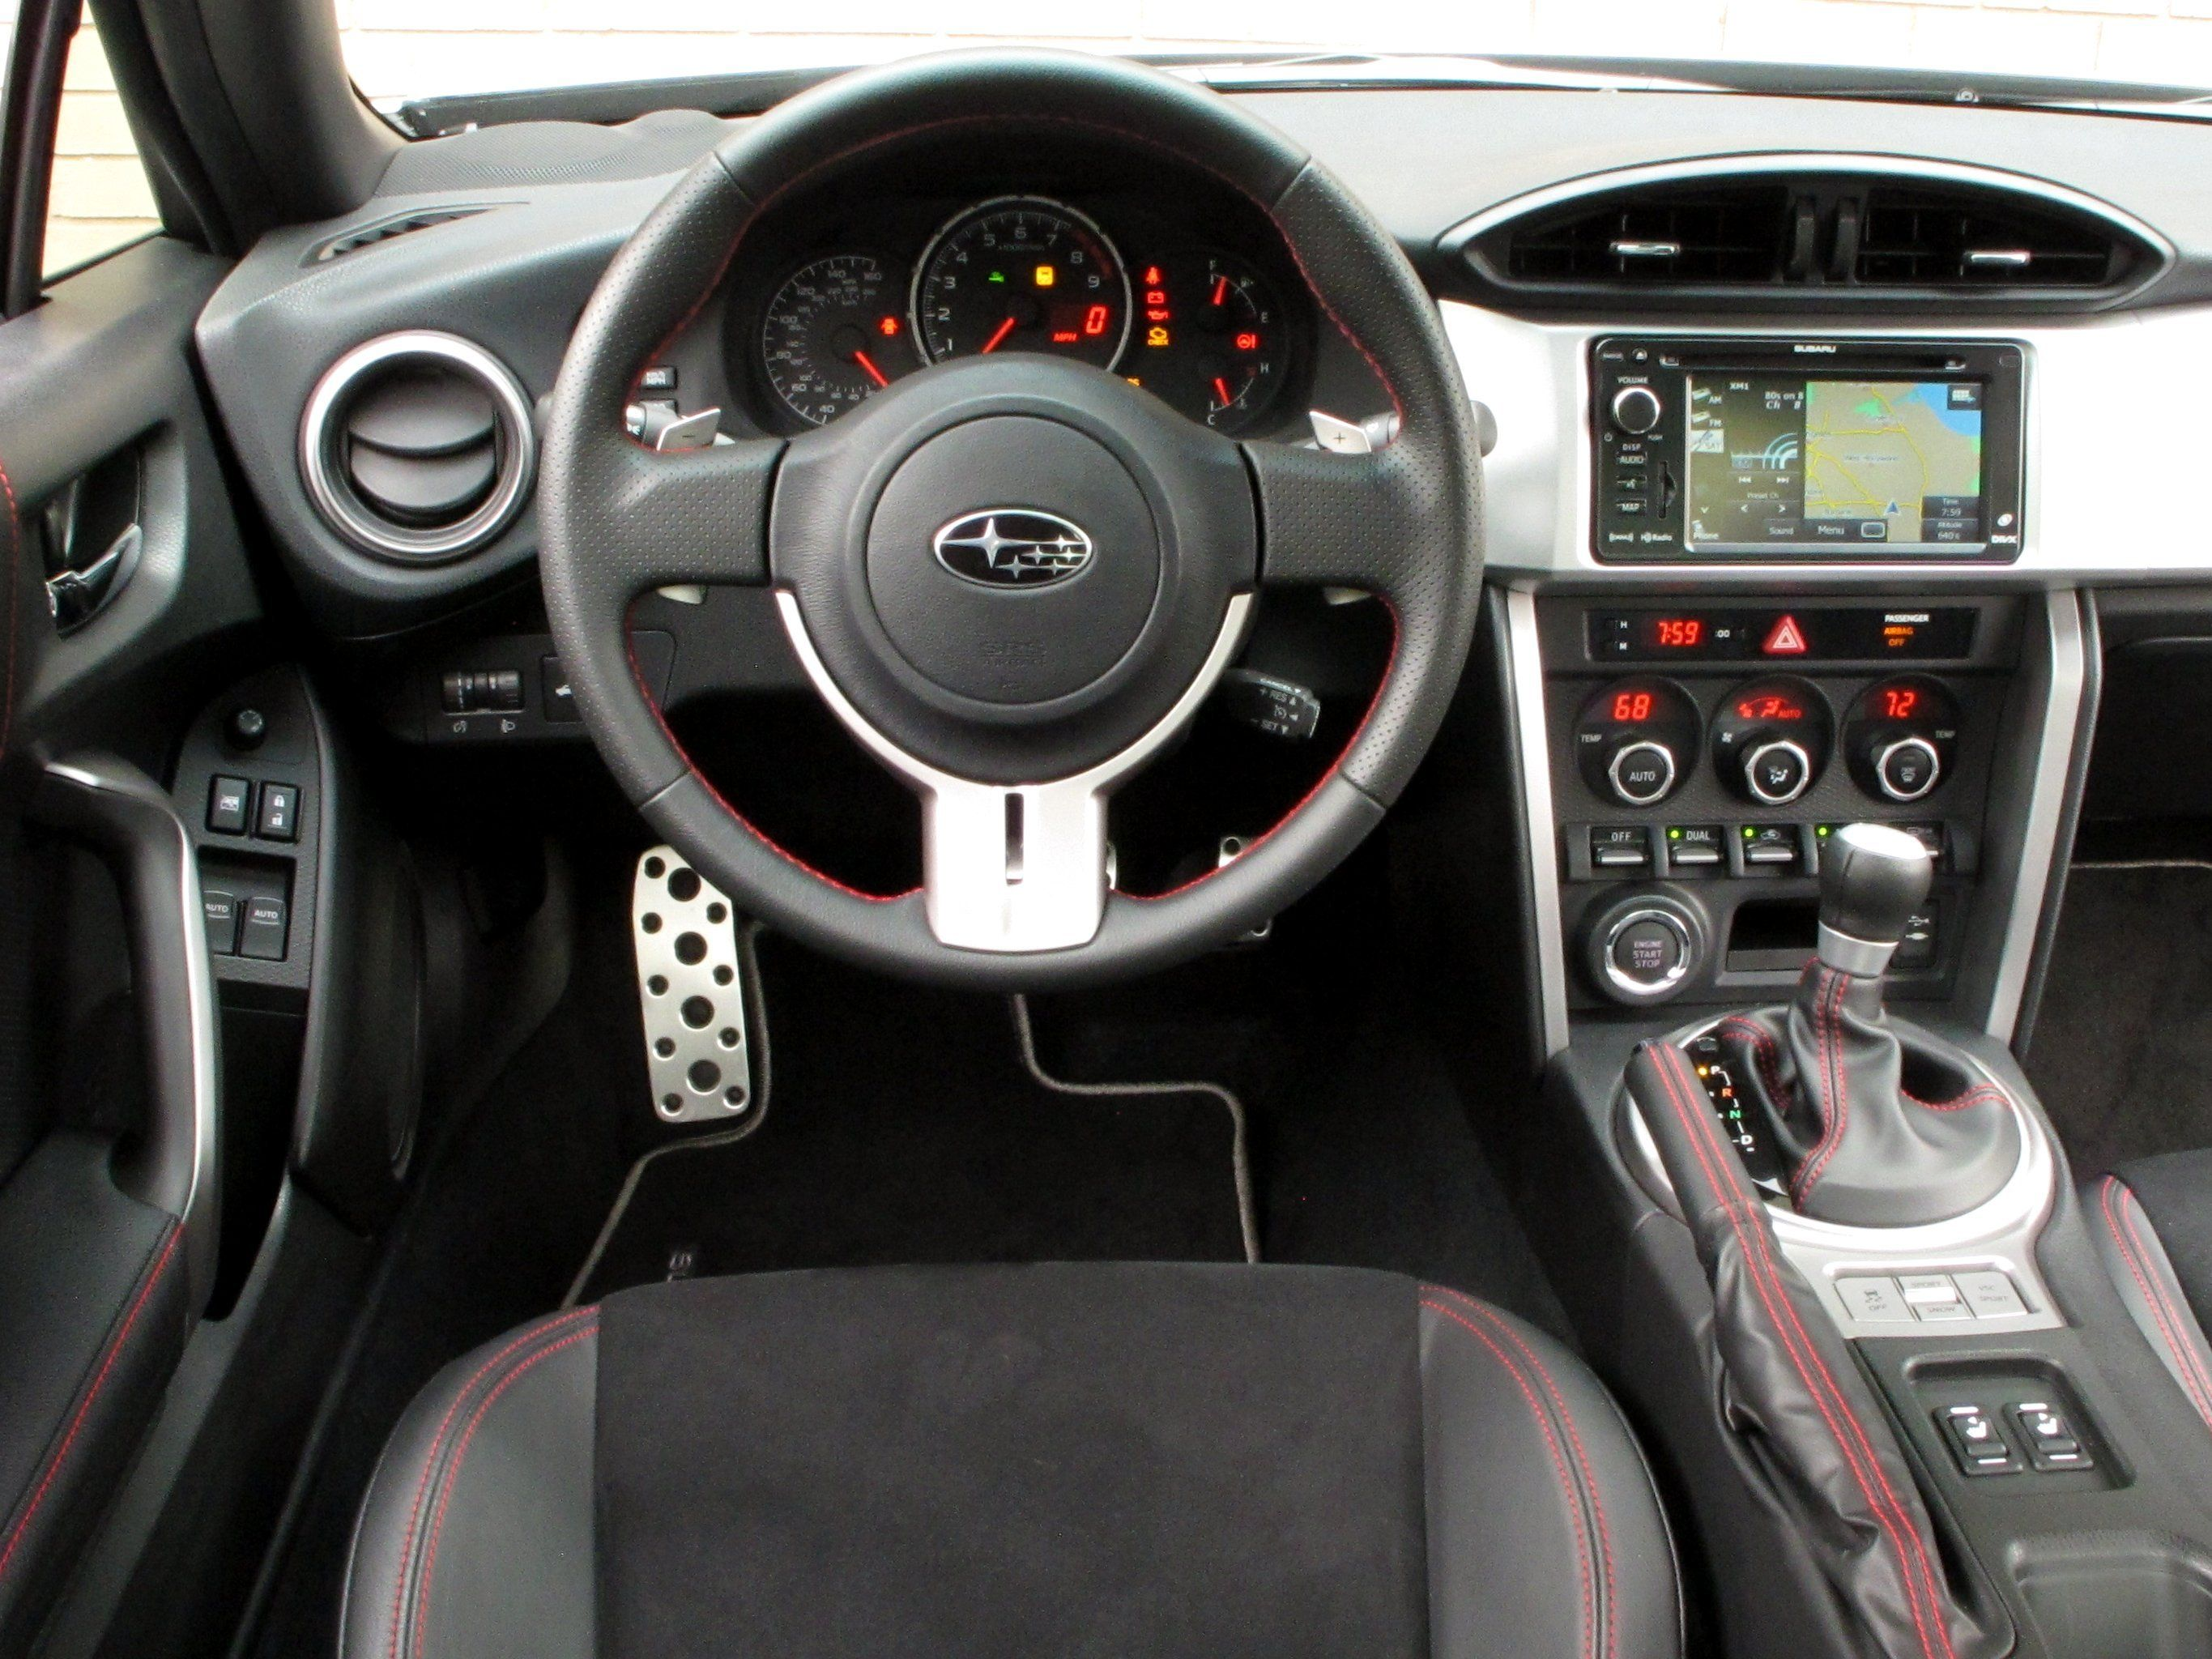 Subaru brz interior my style pinterest subaru cars and scion frs for Scion frs interior accessories